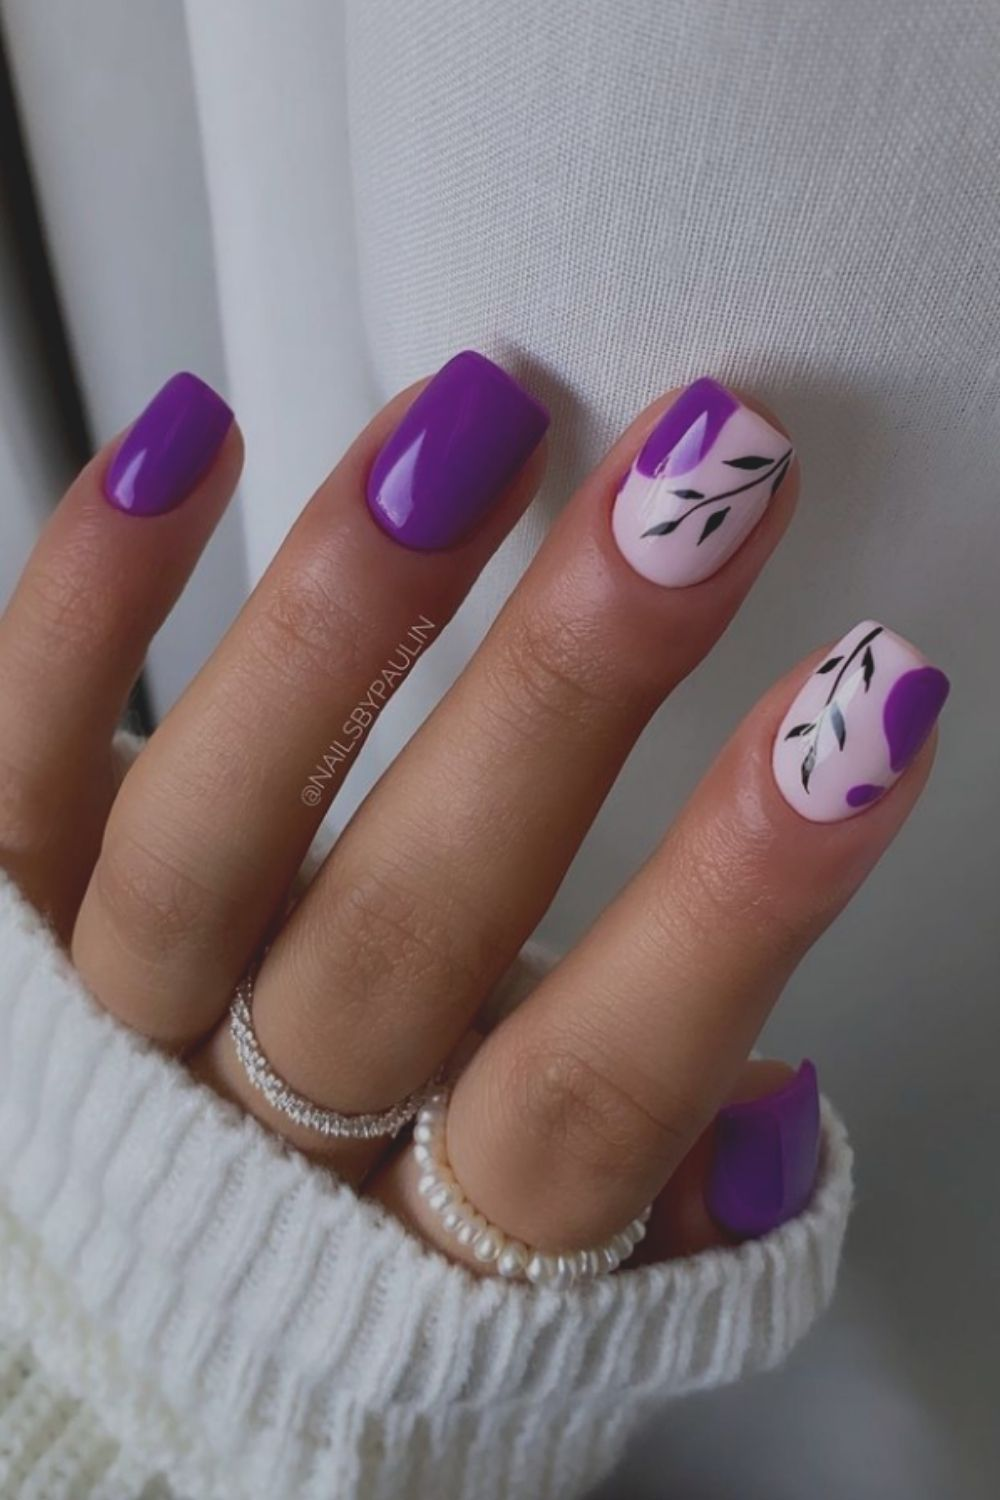 Leaves and purple come together